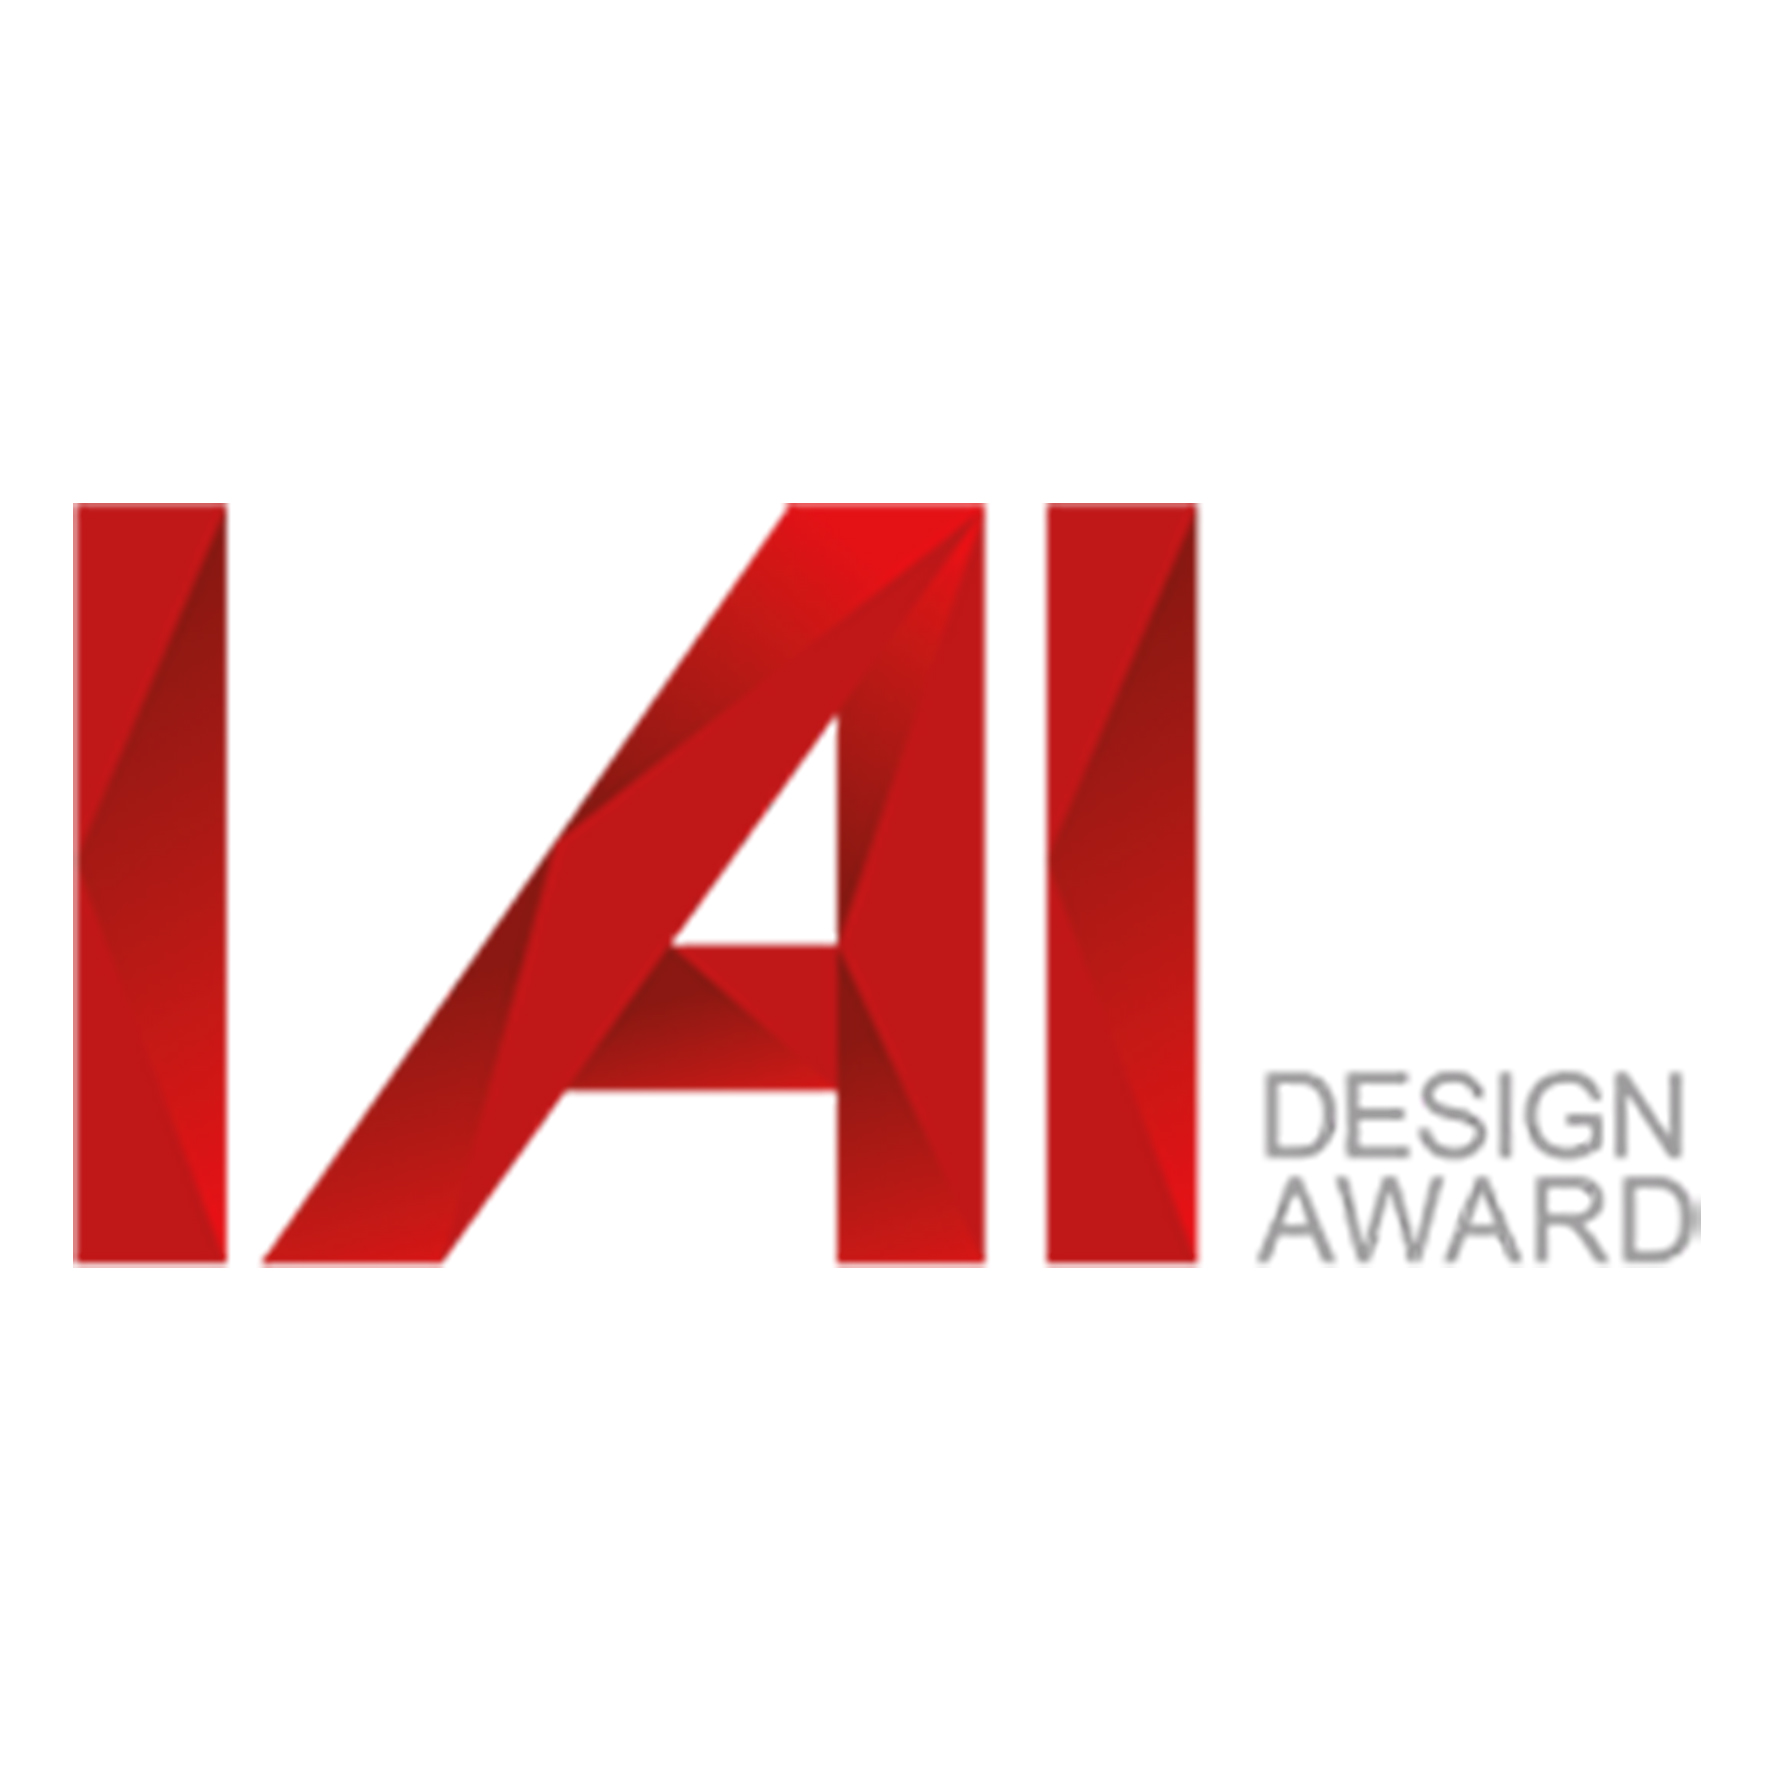 Design Excellence Award IAI DESIGN AWARD 2015, Asia Pacific Designers Federation IAI